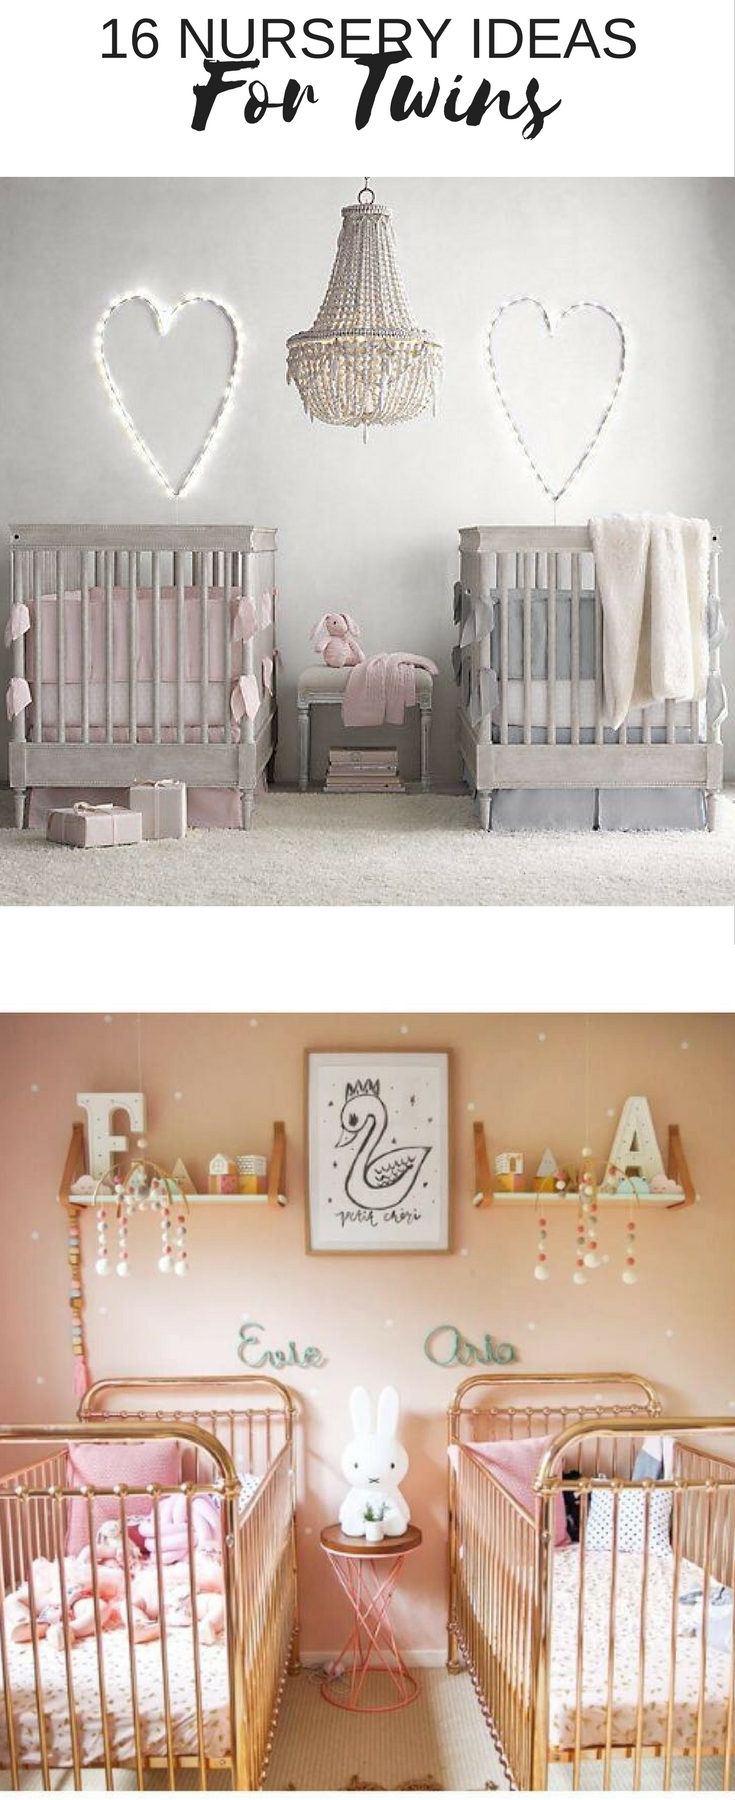 twin-nursery-ideas-pinterst